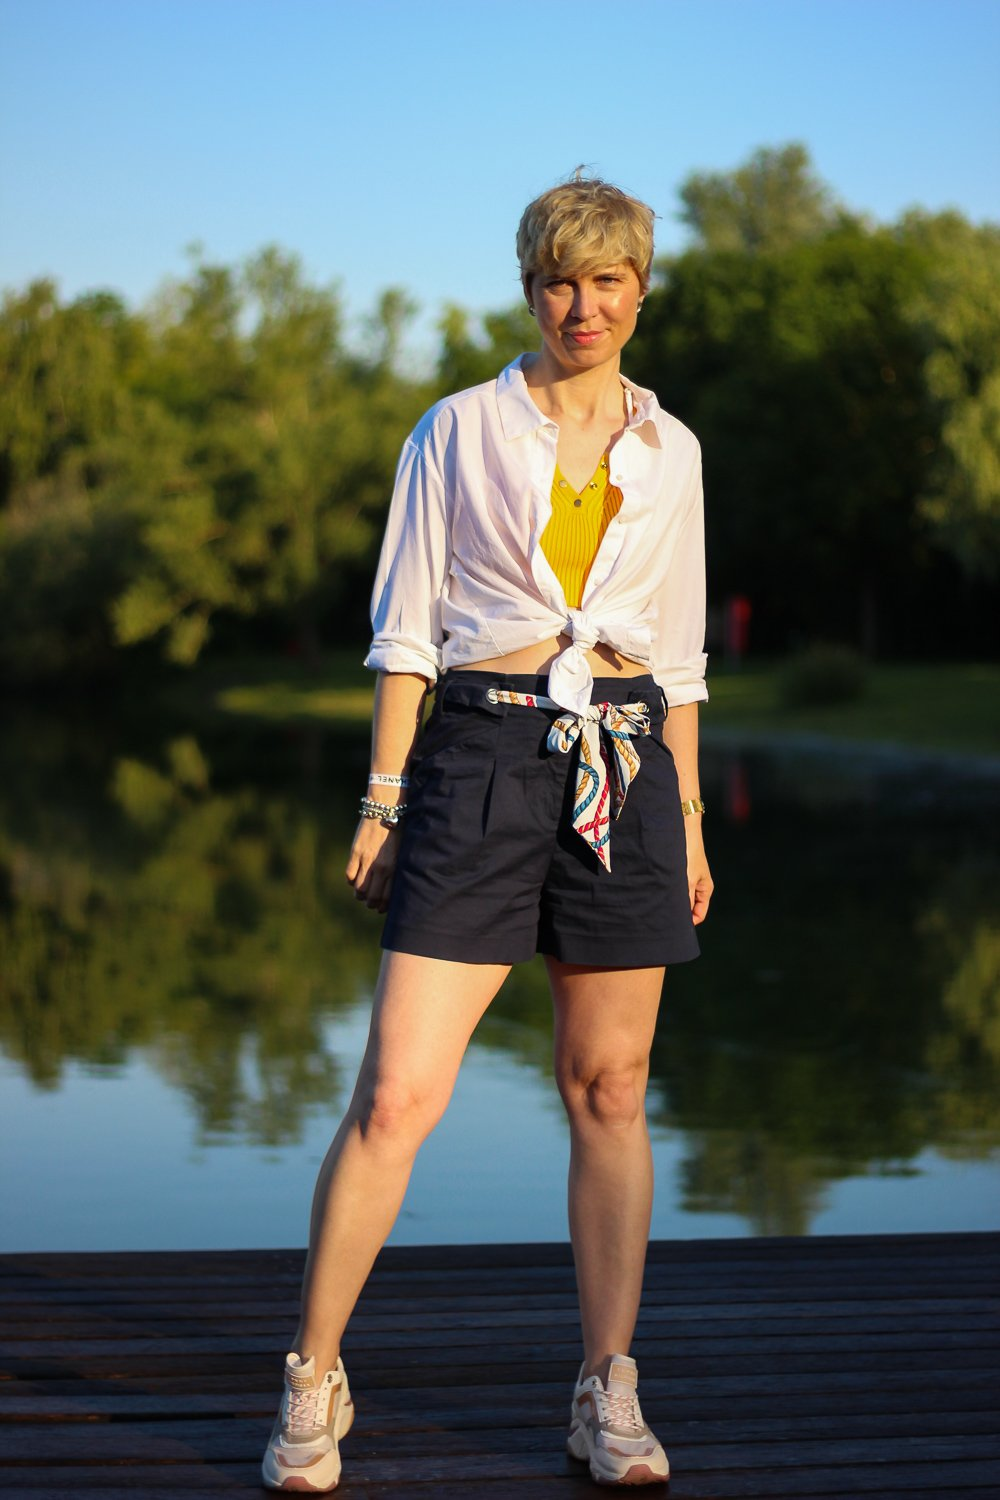 Conny doll lifestyle: Mücke, Shorts, Sommerlook, Kriebelmücke, Sneaker, casual Fridaylook